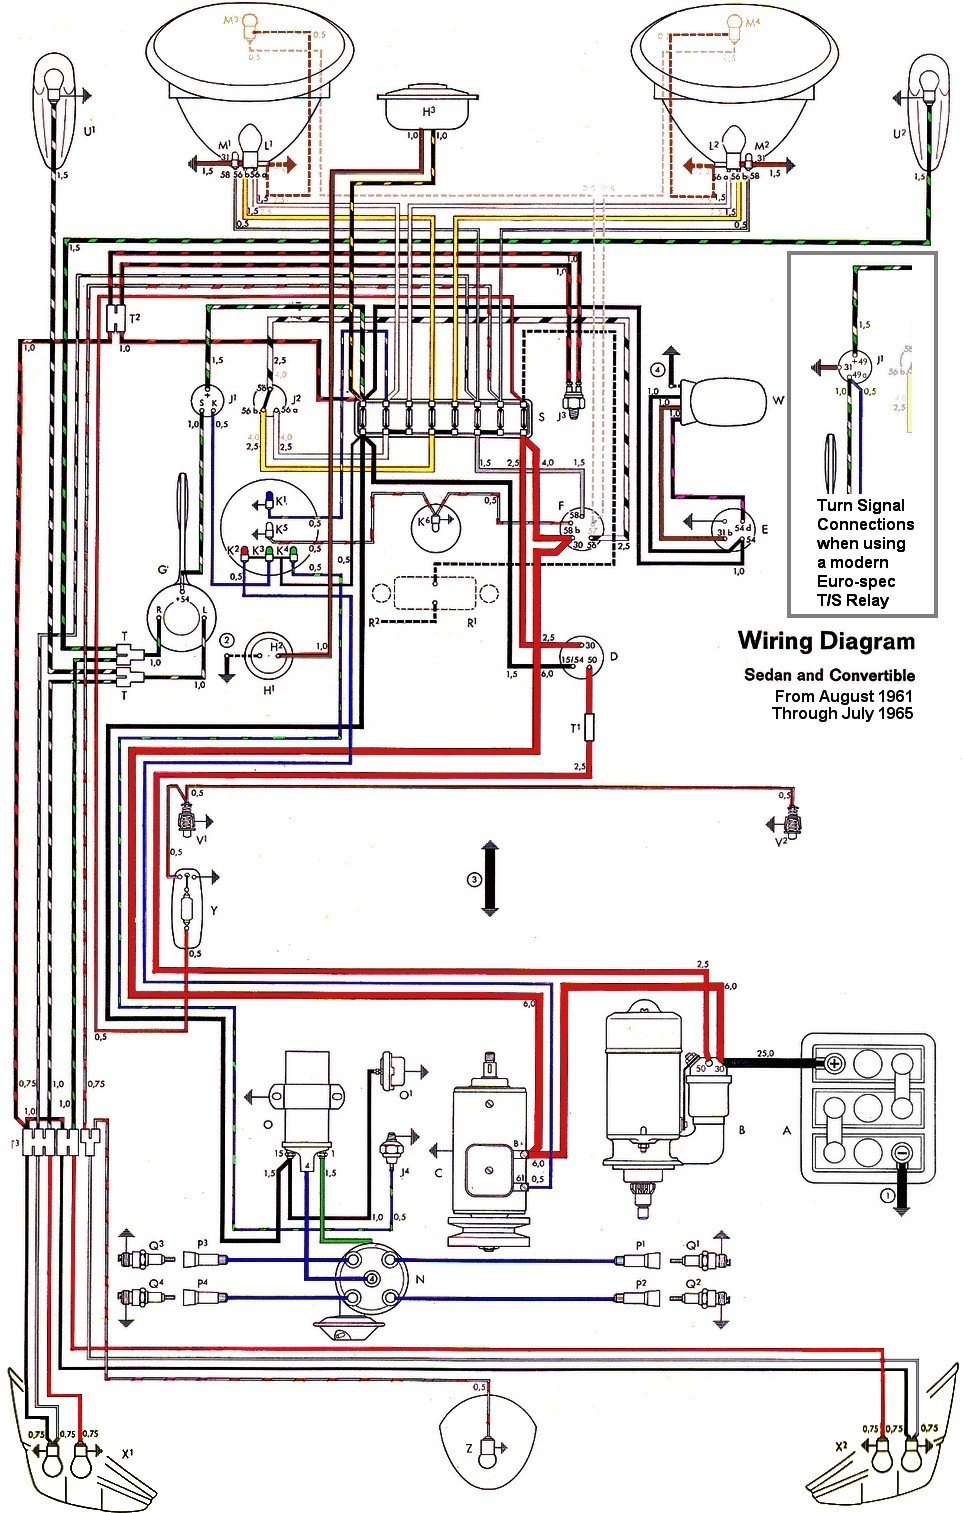 bug_62 65withinset wiring diagram vw beetle sedan and convertible 1961 1965 vw 73 VW Beetle Wiring Diagram at soozxer.org